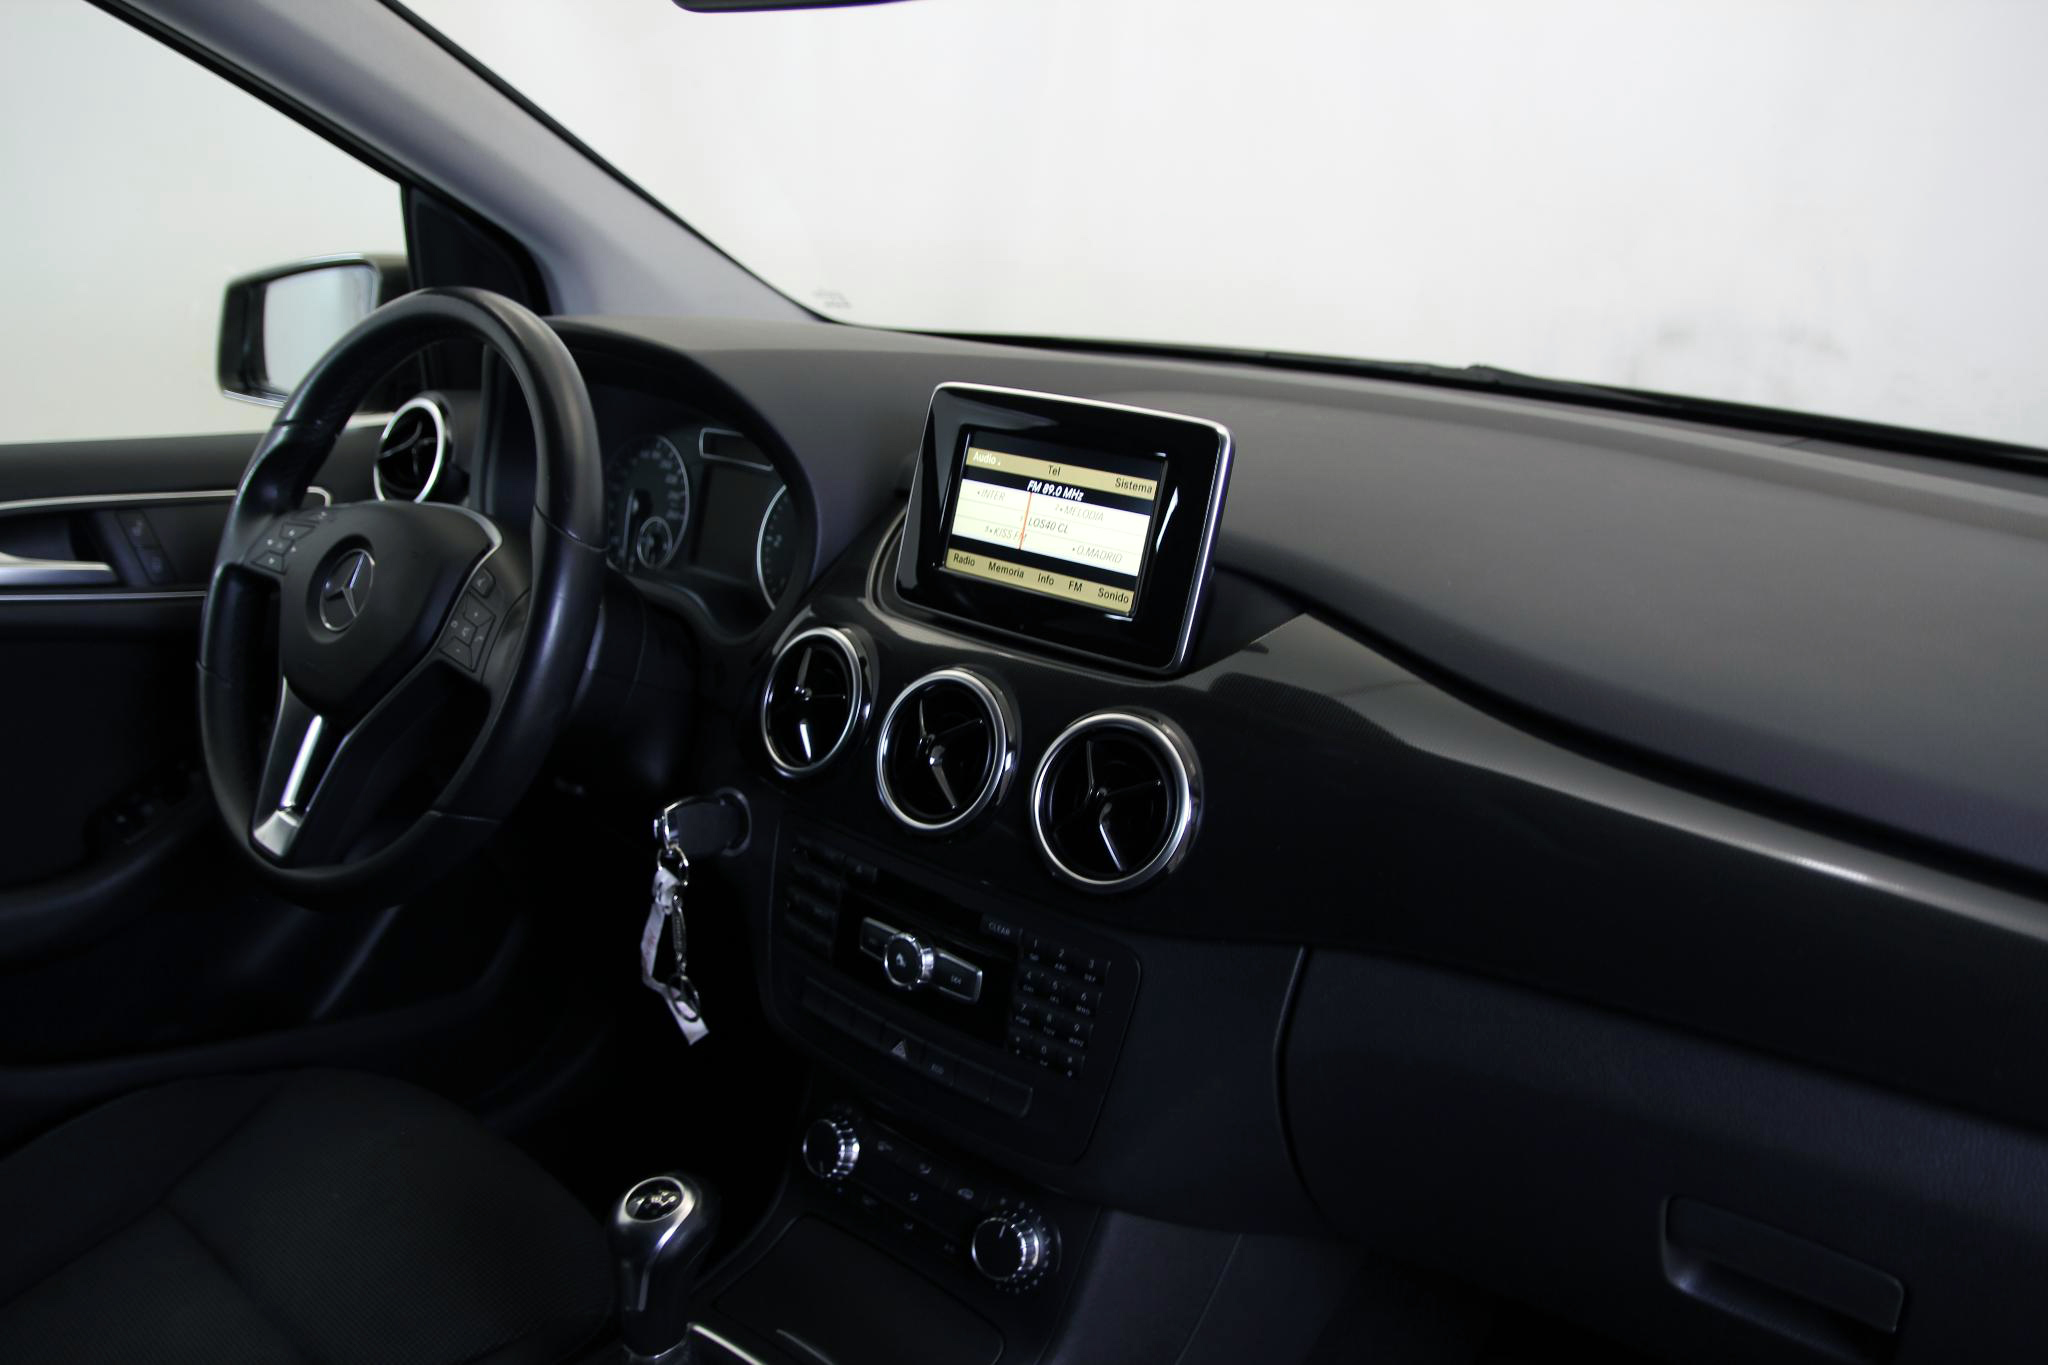 Mercedes-Benz Clase B CLASE B 180 CDI BLUE EFFICIENCY 5P imagen 18